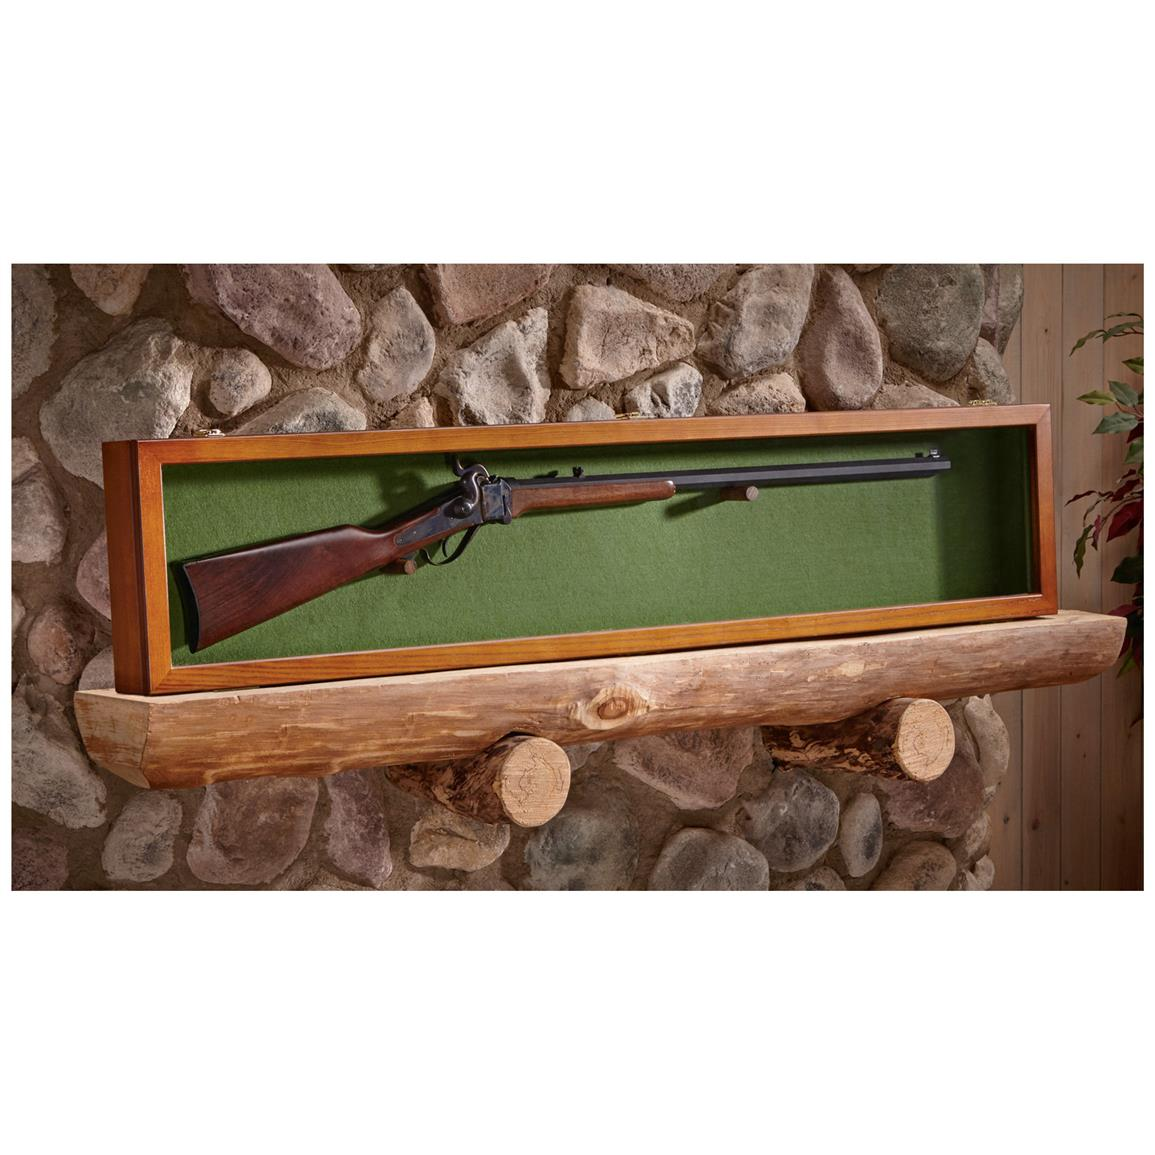 CASTLECREEK Gun Display Case